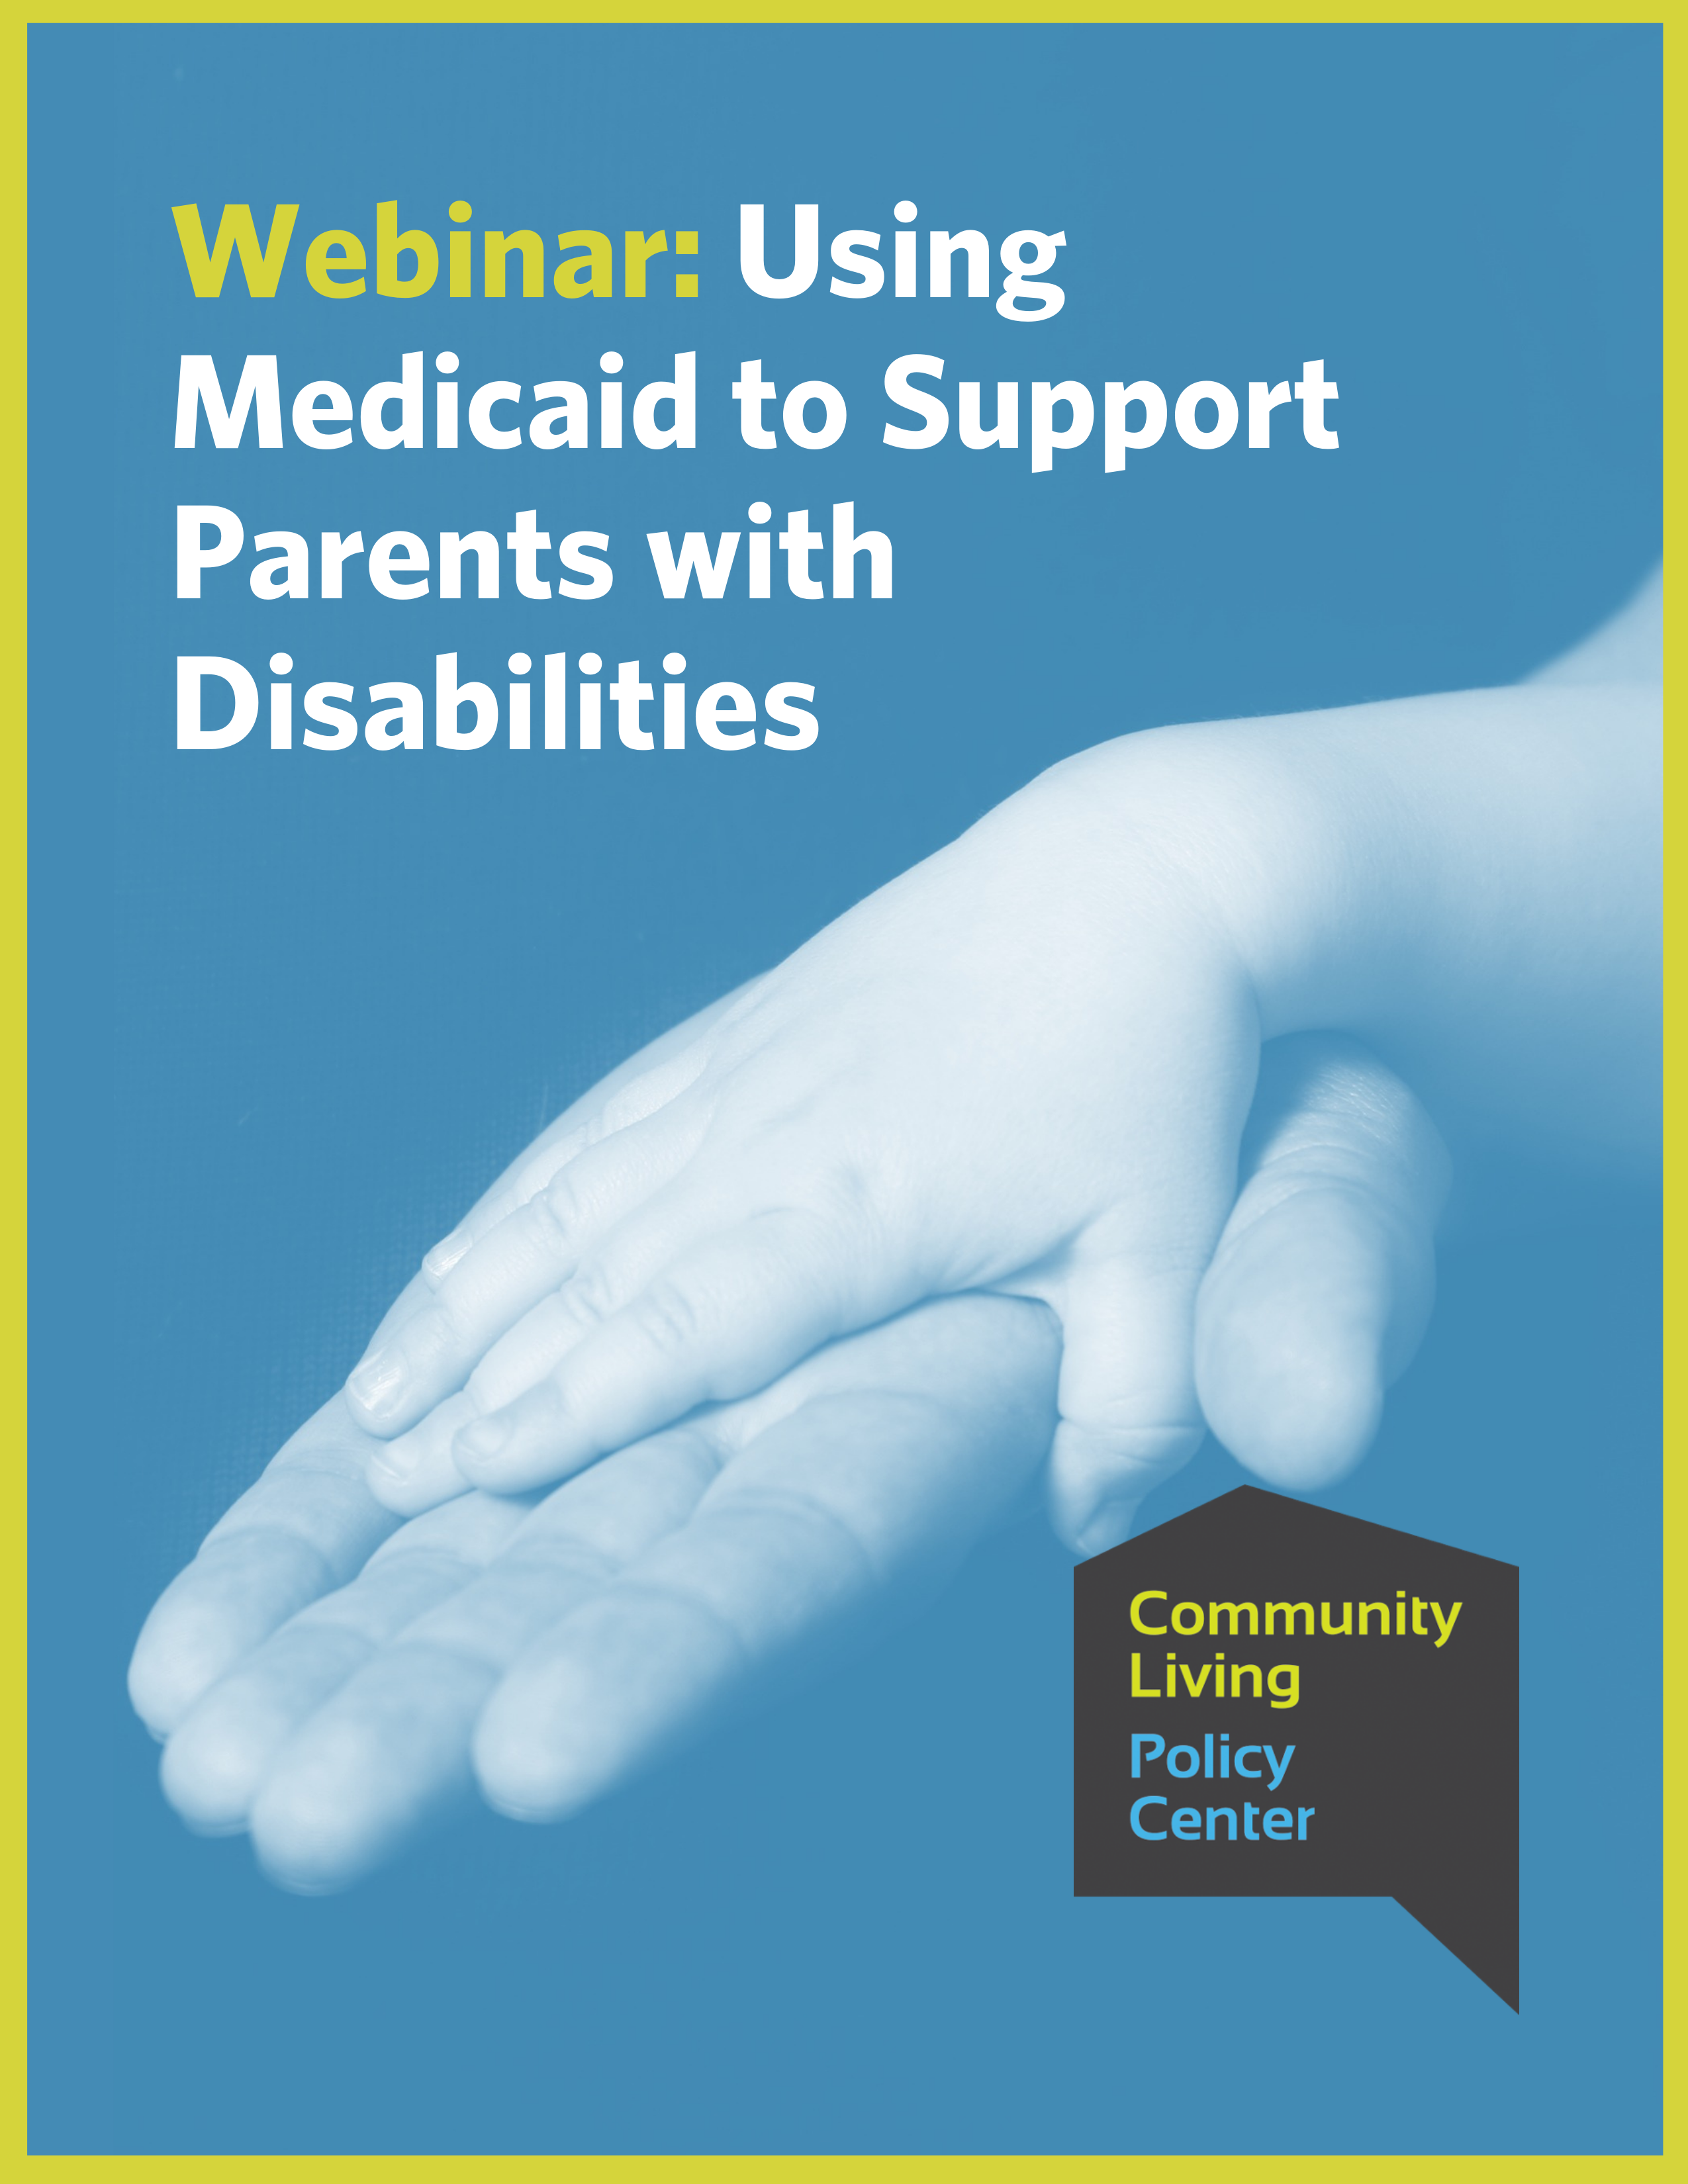 Webinar: Using medicaid to support parents with disabilities